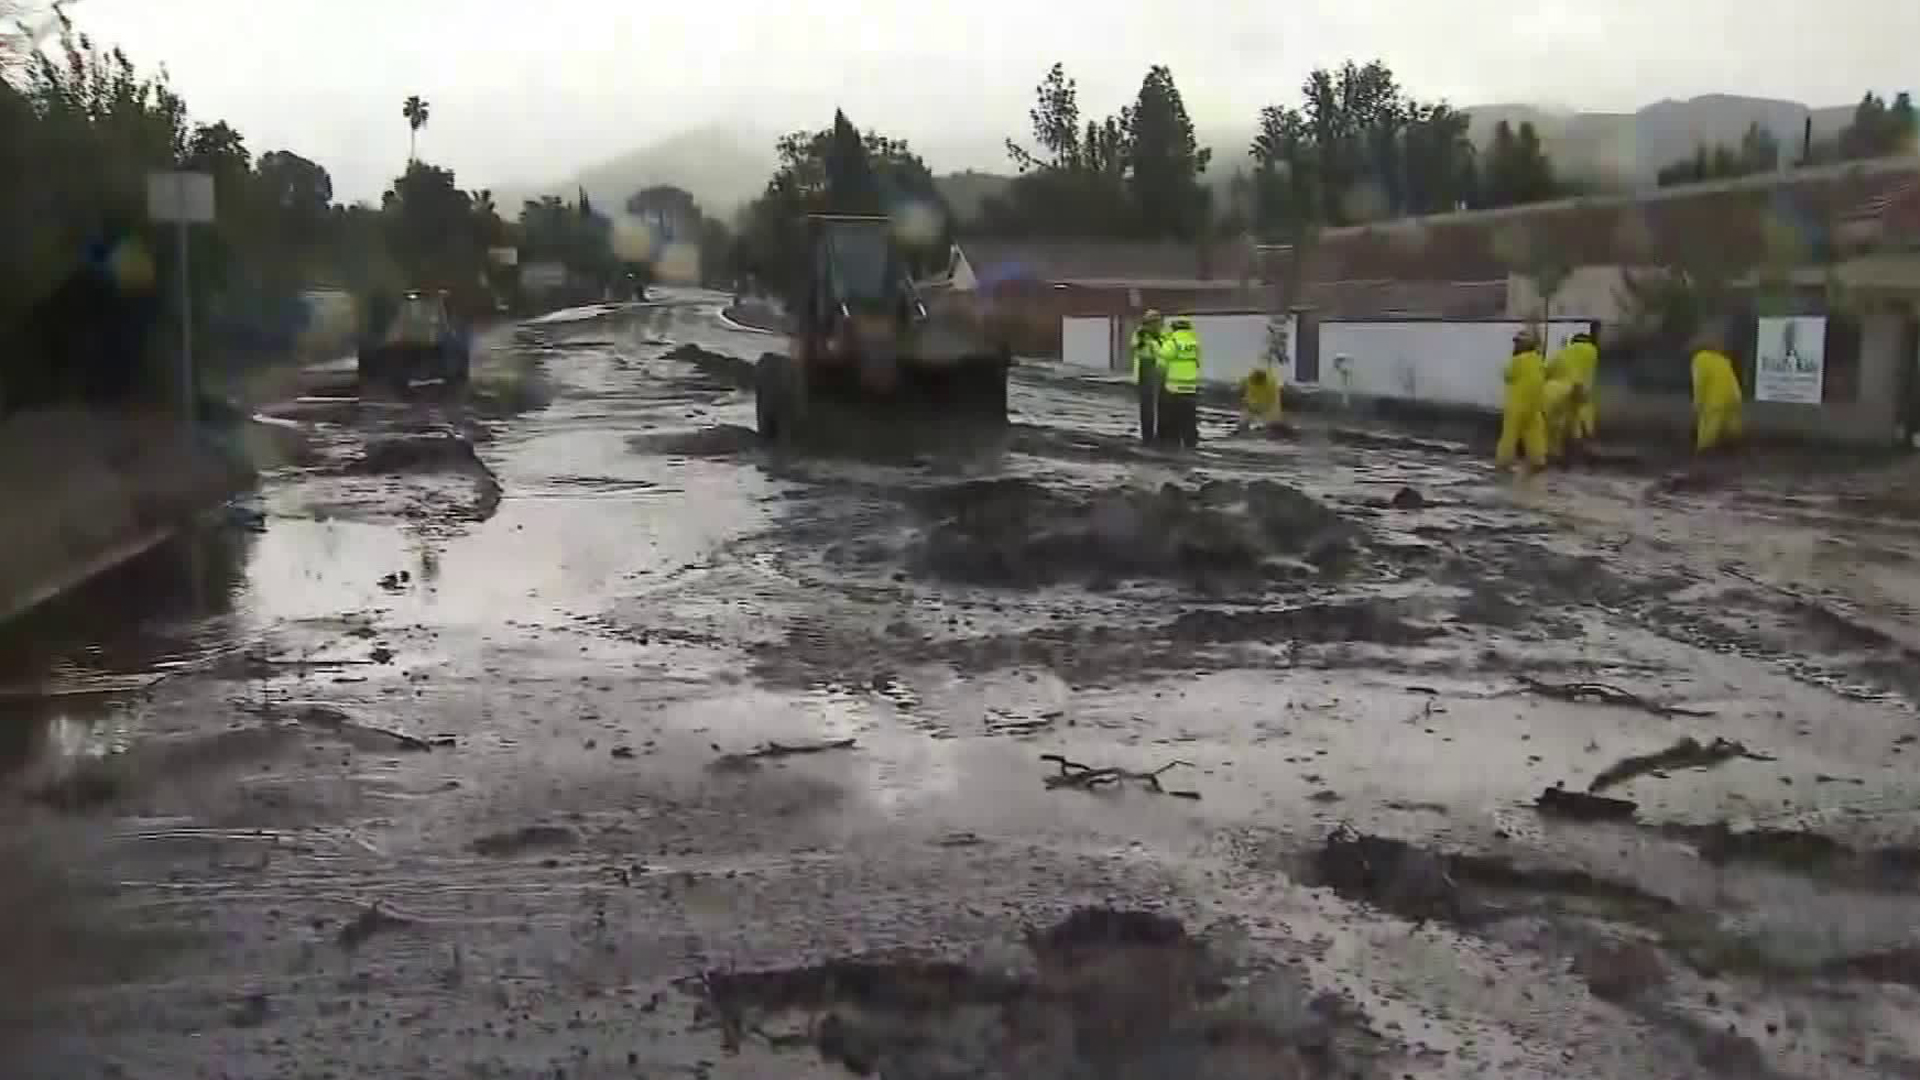 The area of La Tuna Canyon left scorched bare by wildfires was slammed with flows of mud and debris from a rainstorm on Jan. 9, 2018. (Credit: KTLA)